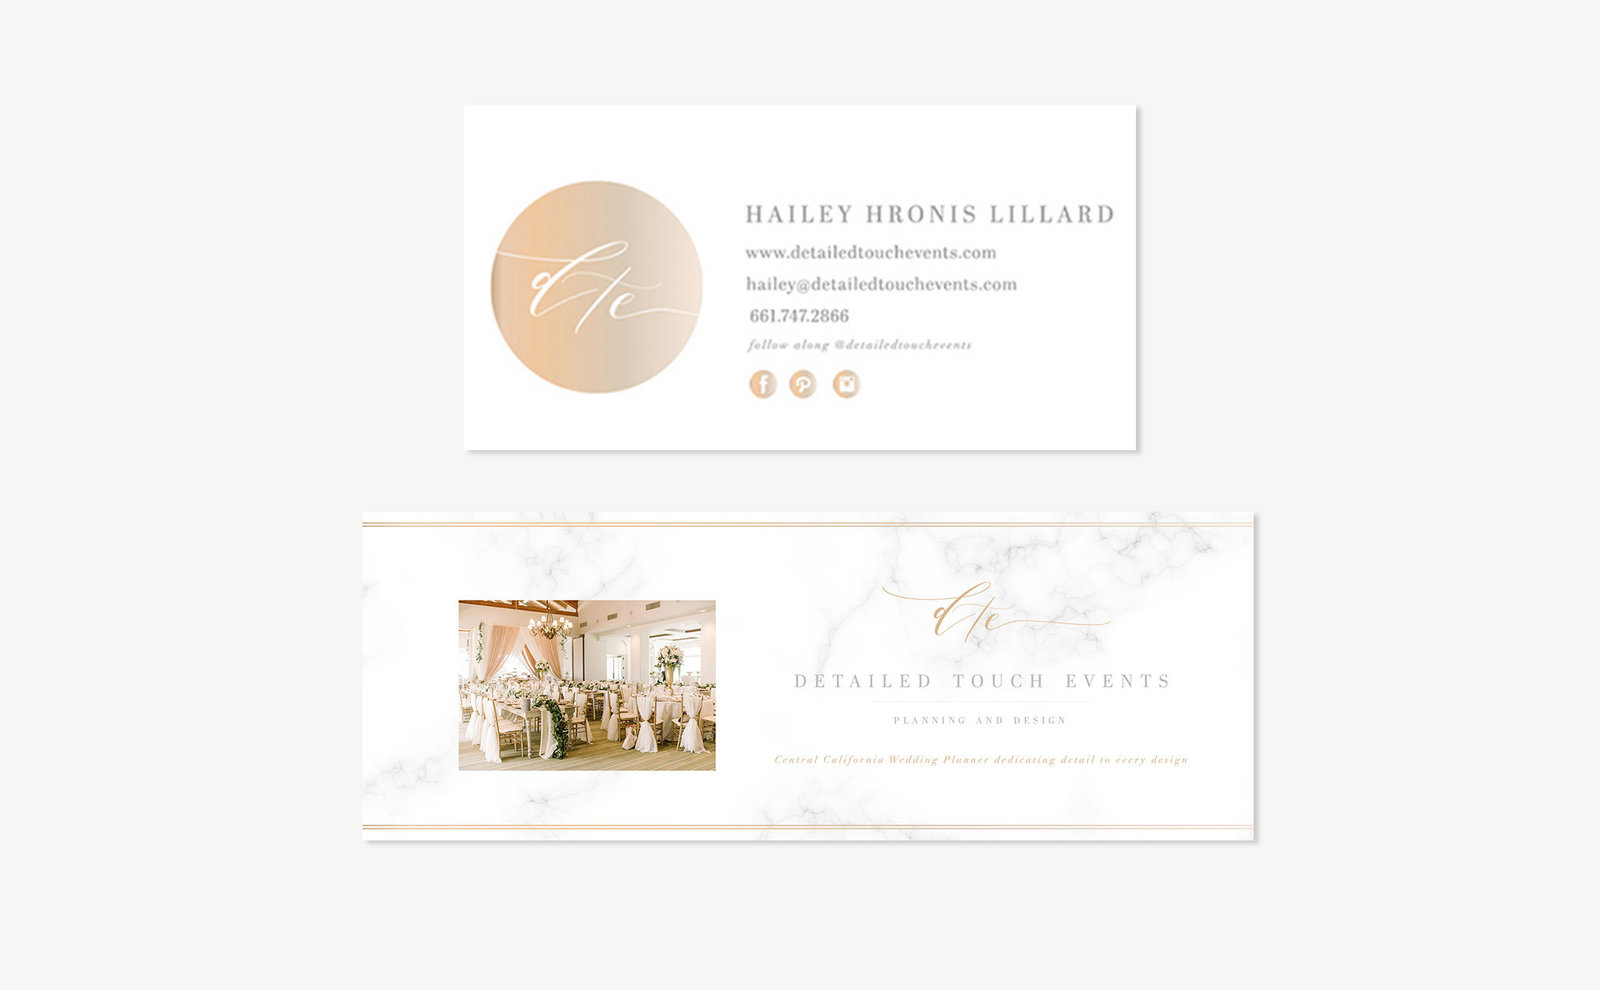 branding-for-wedding-businesses-social-media-dte